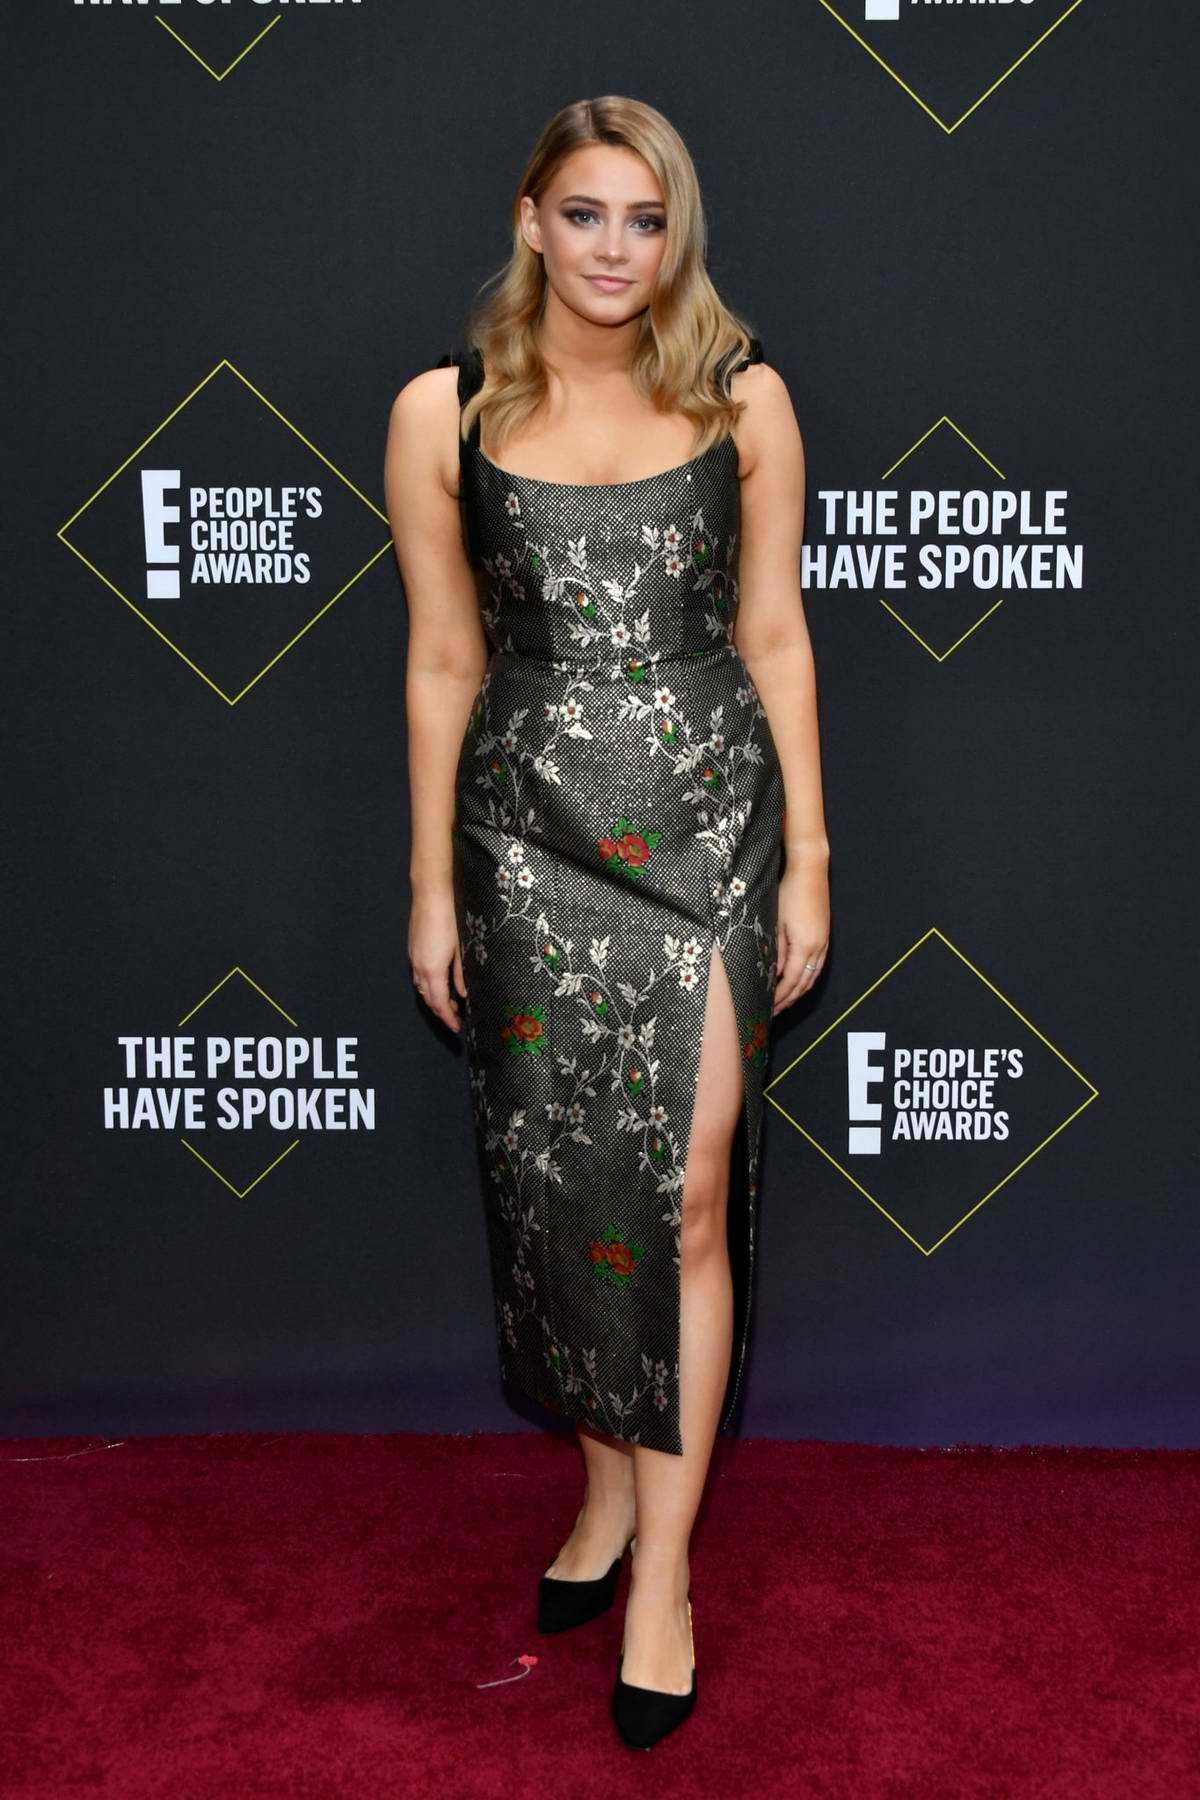 Josephine Langford attends the 2019 E! People's Choice Awards held at the Barker Hangar in Santa Monica, California